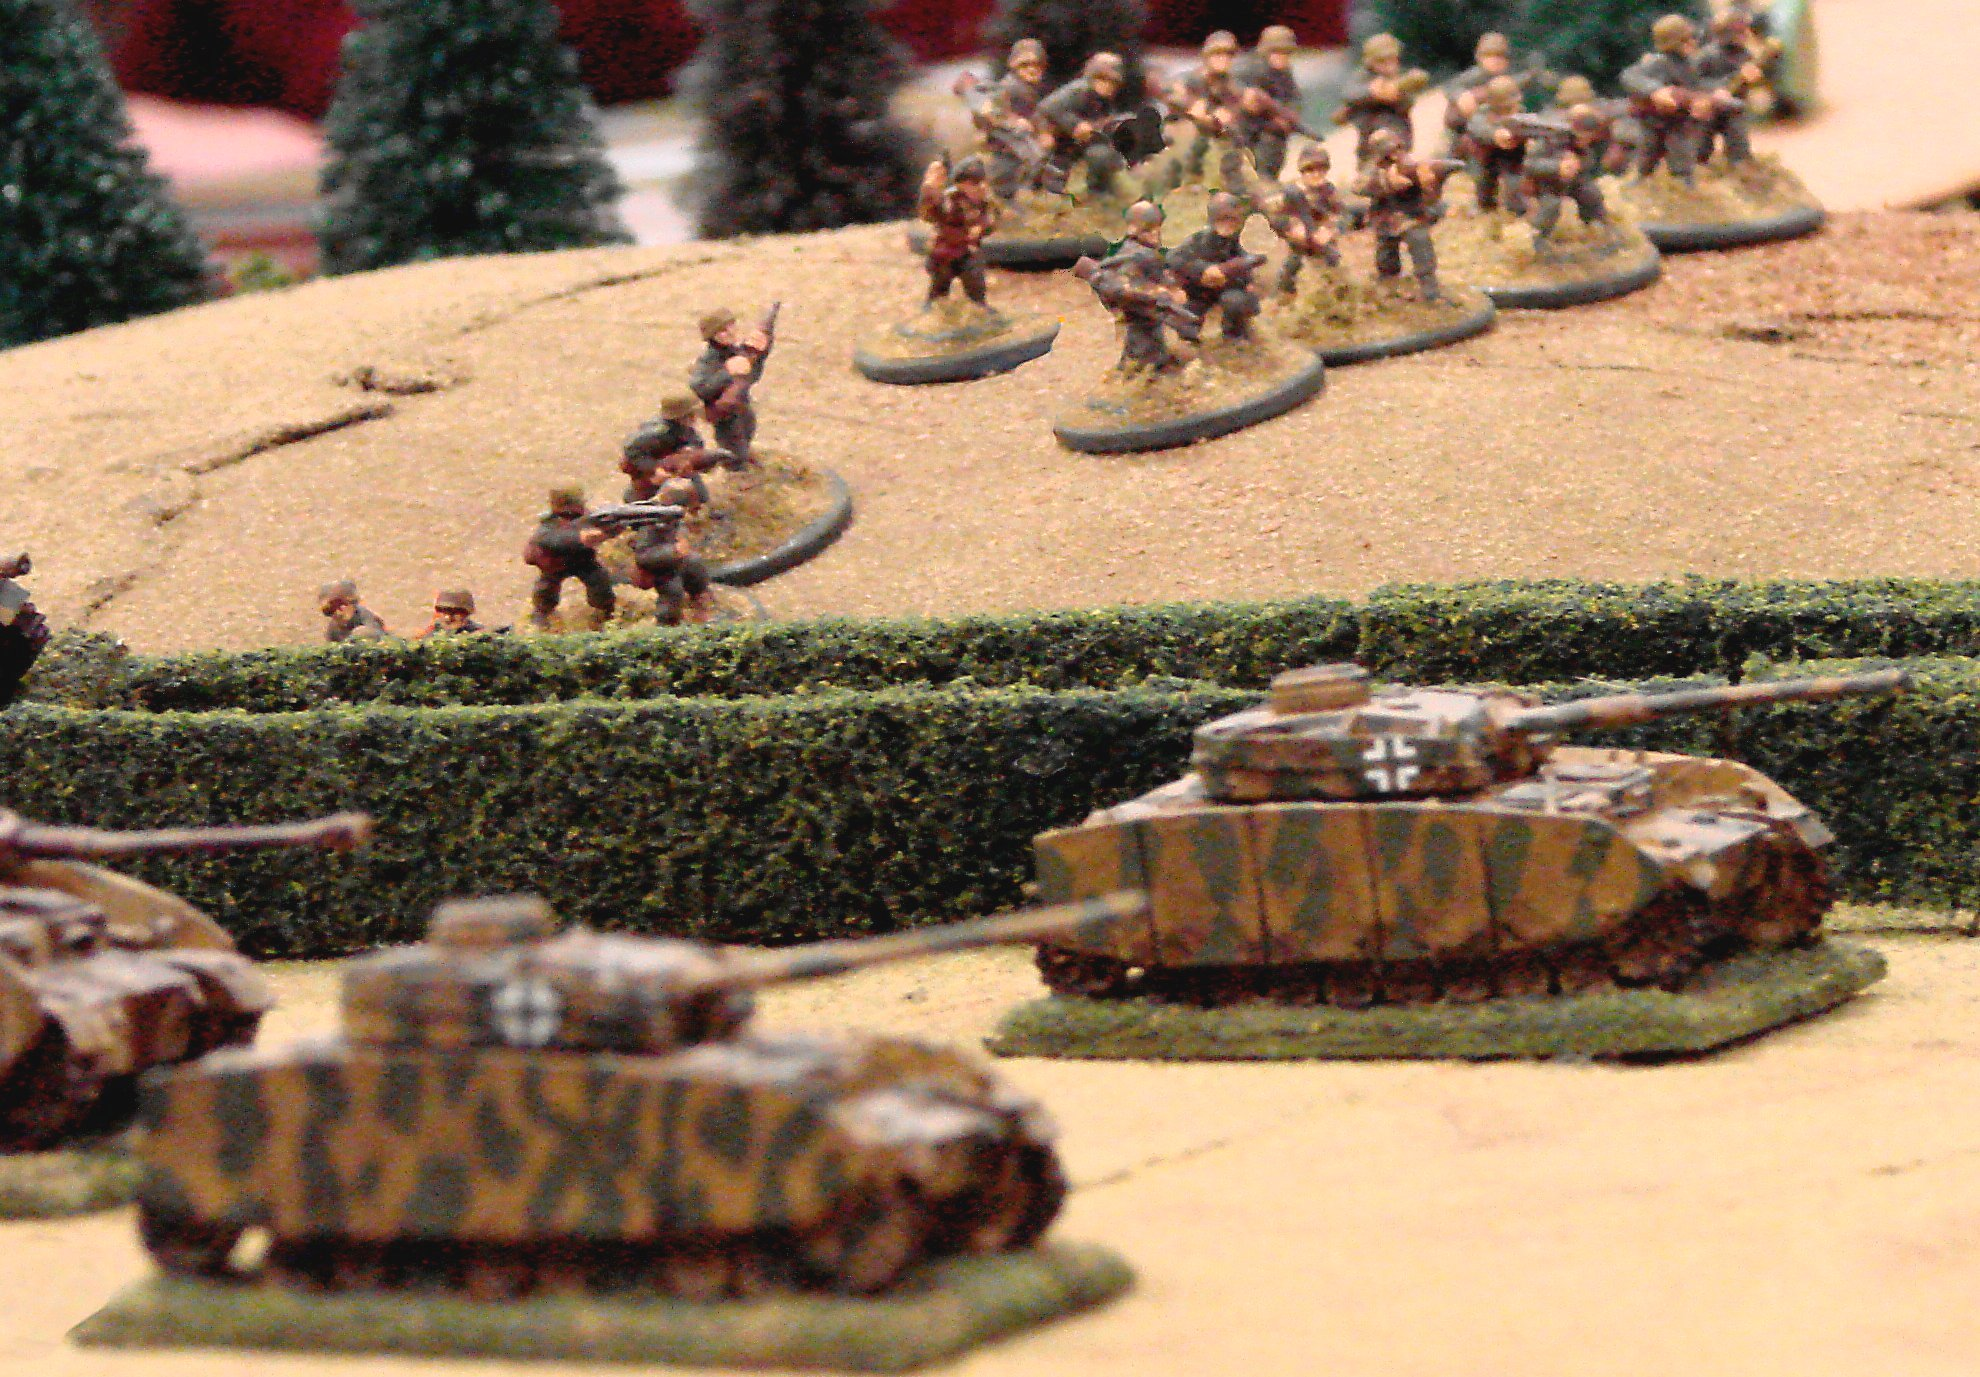 Back on the right flank the Panzers have sorted themselves out after the artillery barrage, and cover the flank of their infantry.